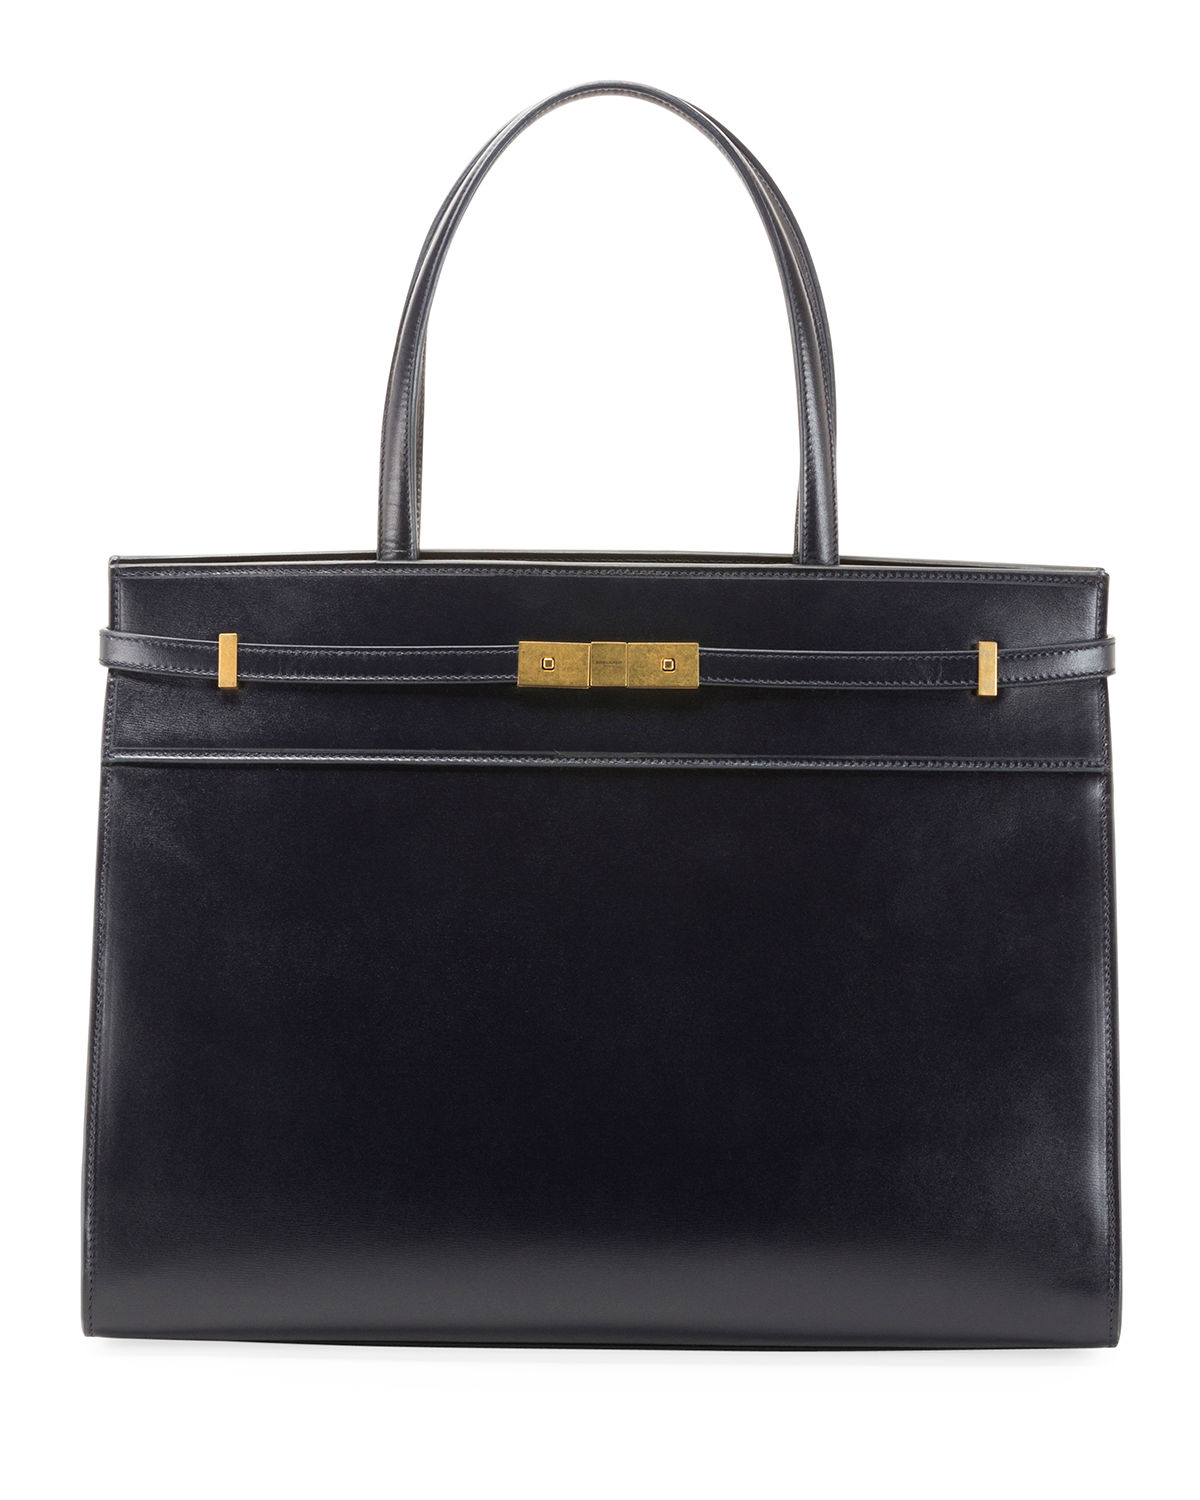 1c91d0ab6037a Saint Laurent Manhattan Medium Belted Leather Shoulder Tote Bag - Golden  Hardware In Navy